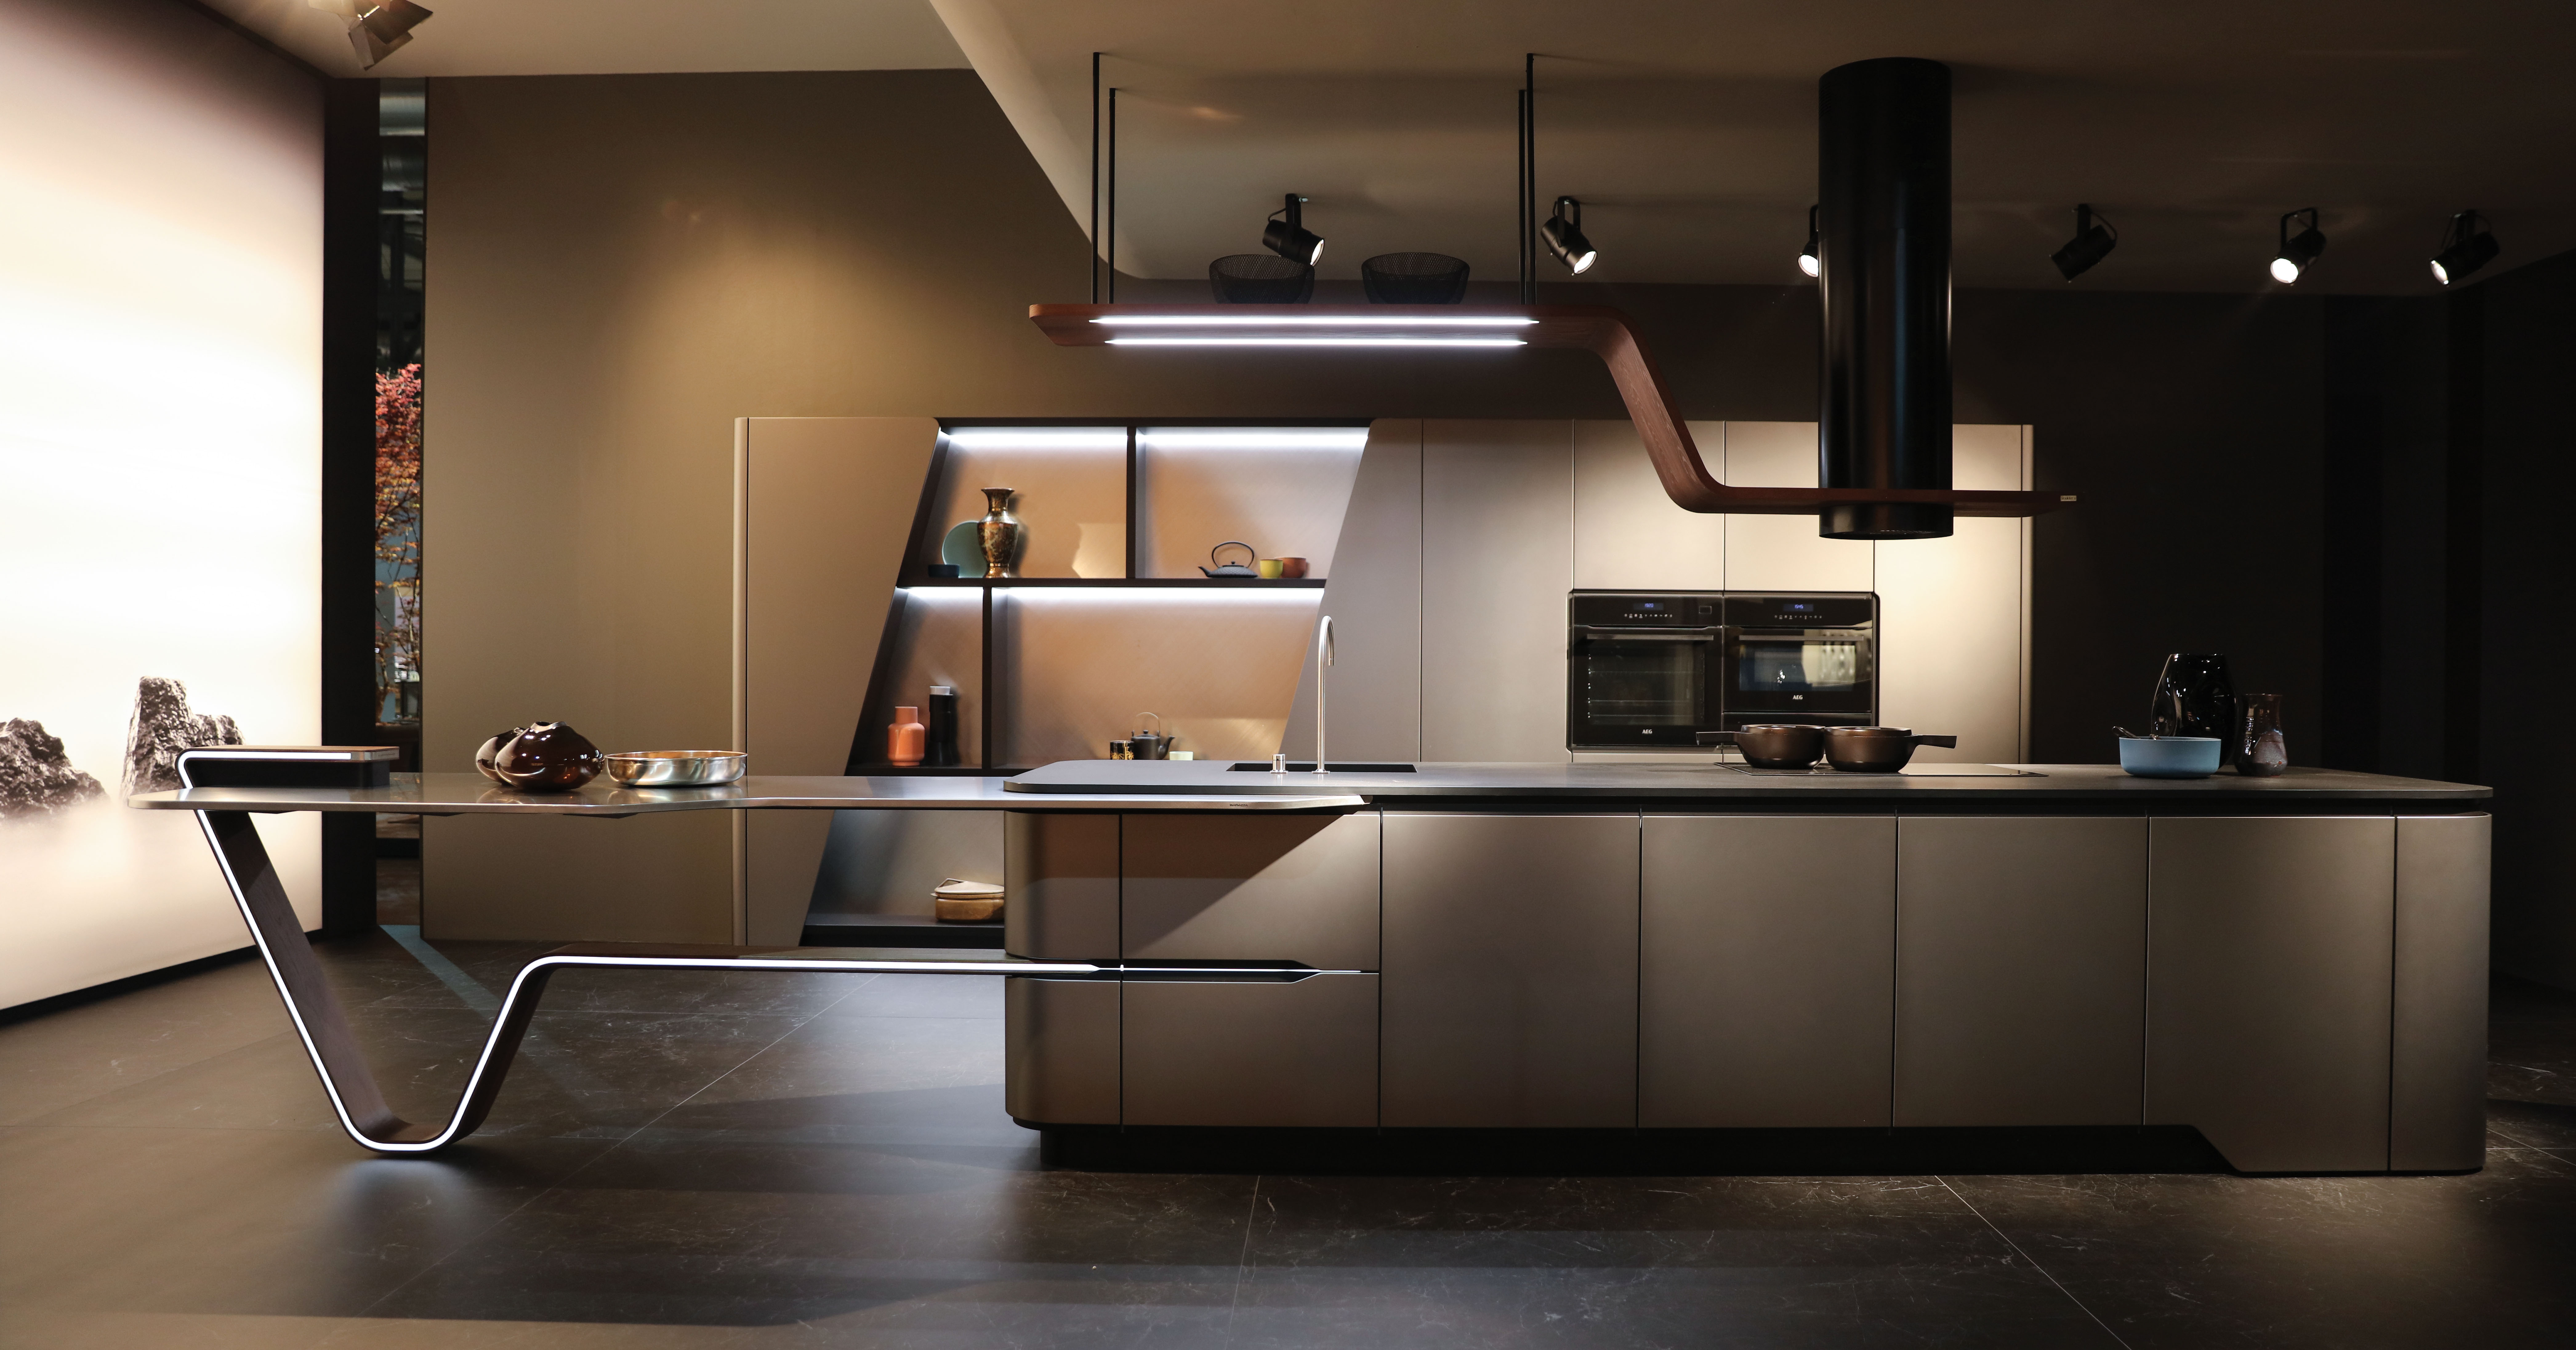 Cucina Hacker What We Saw At Salone Del Mobile 2018 Archpaper